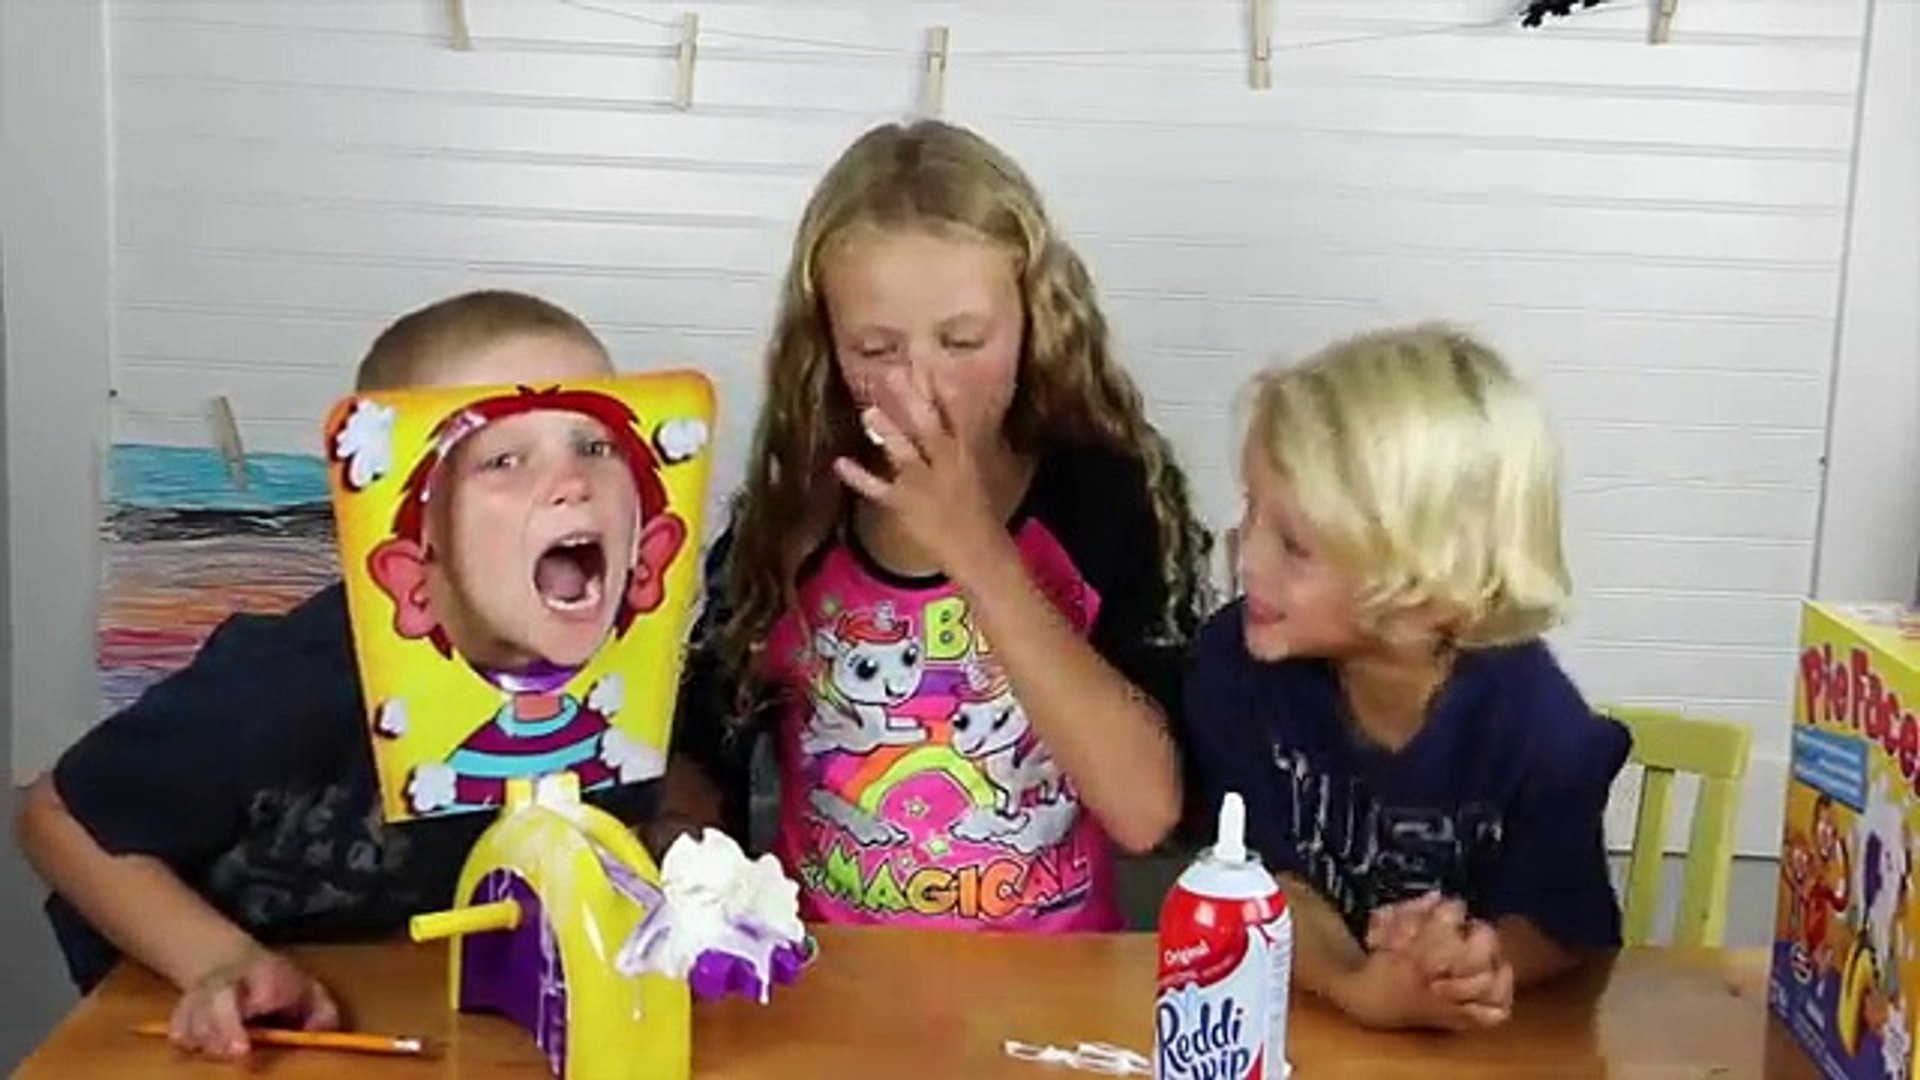 PIE FACE - THE FUNNIEST GAME FOR KIDS